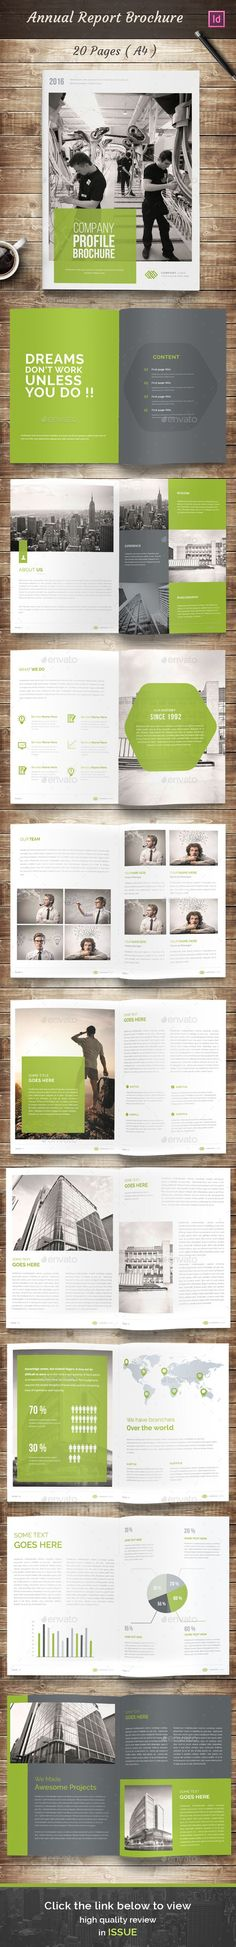 20 Pages A4 Annual Report Brochure Template InDesign INDD. Download here: http://graphicriver.net/item/annual-report-brochure/15487461?ref=ksioks: